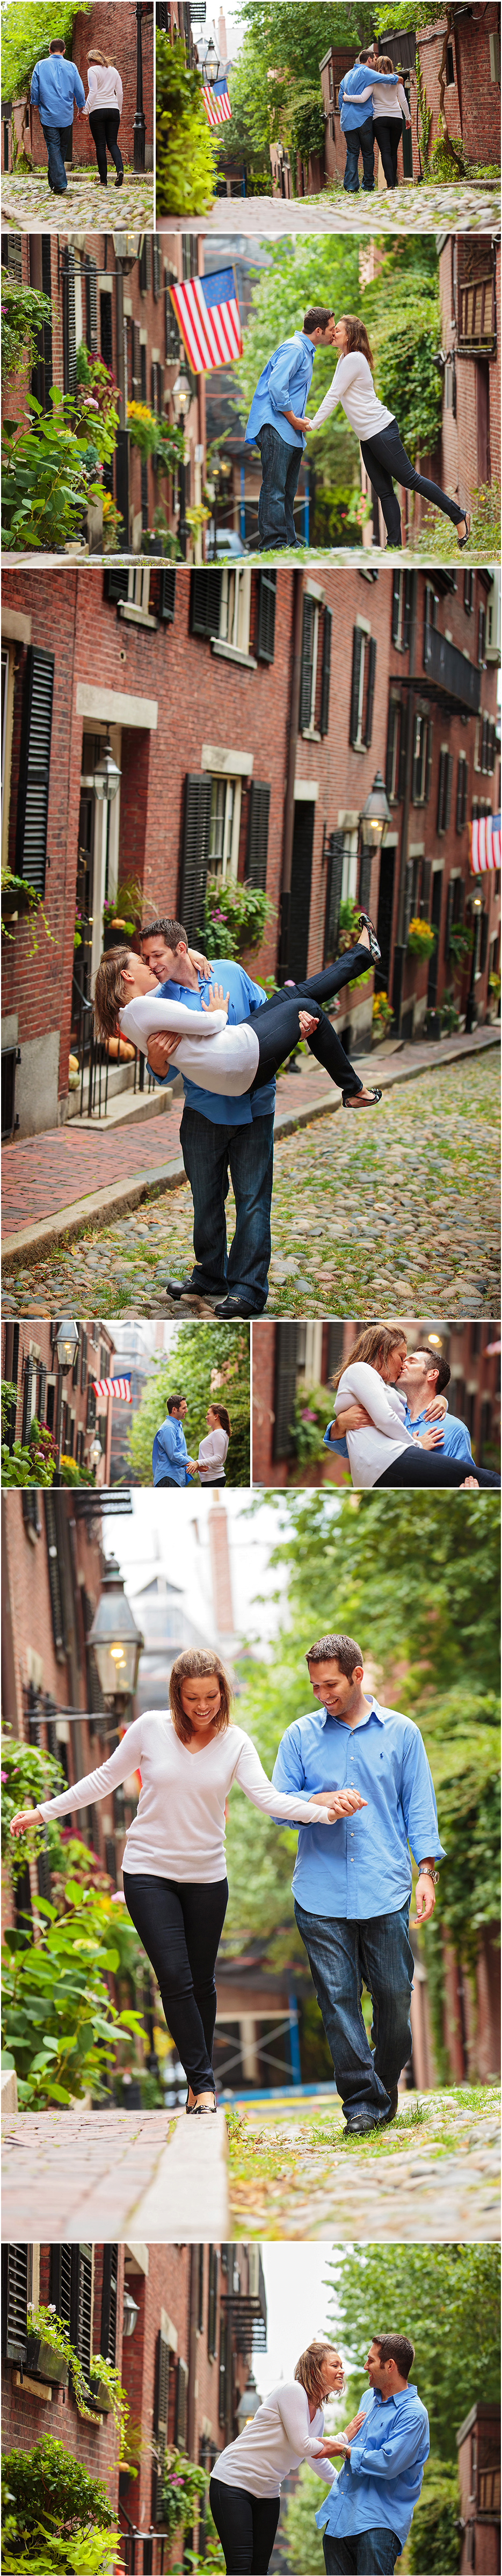 ENGAGEMENT SESSION AND PHOTOS BEACON HILL